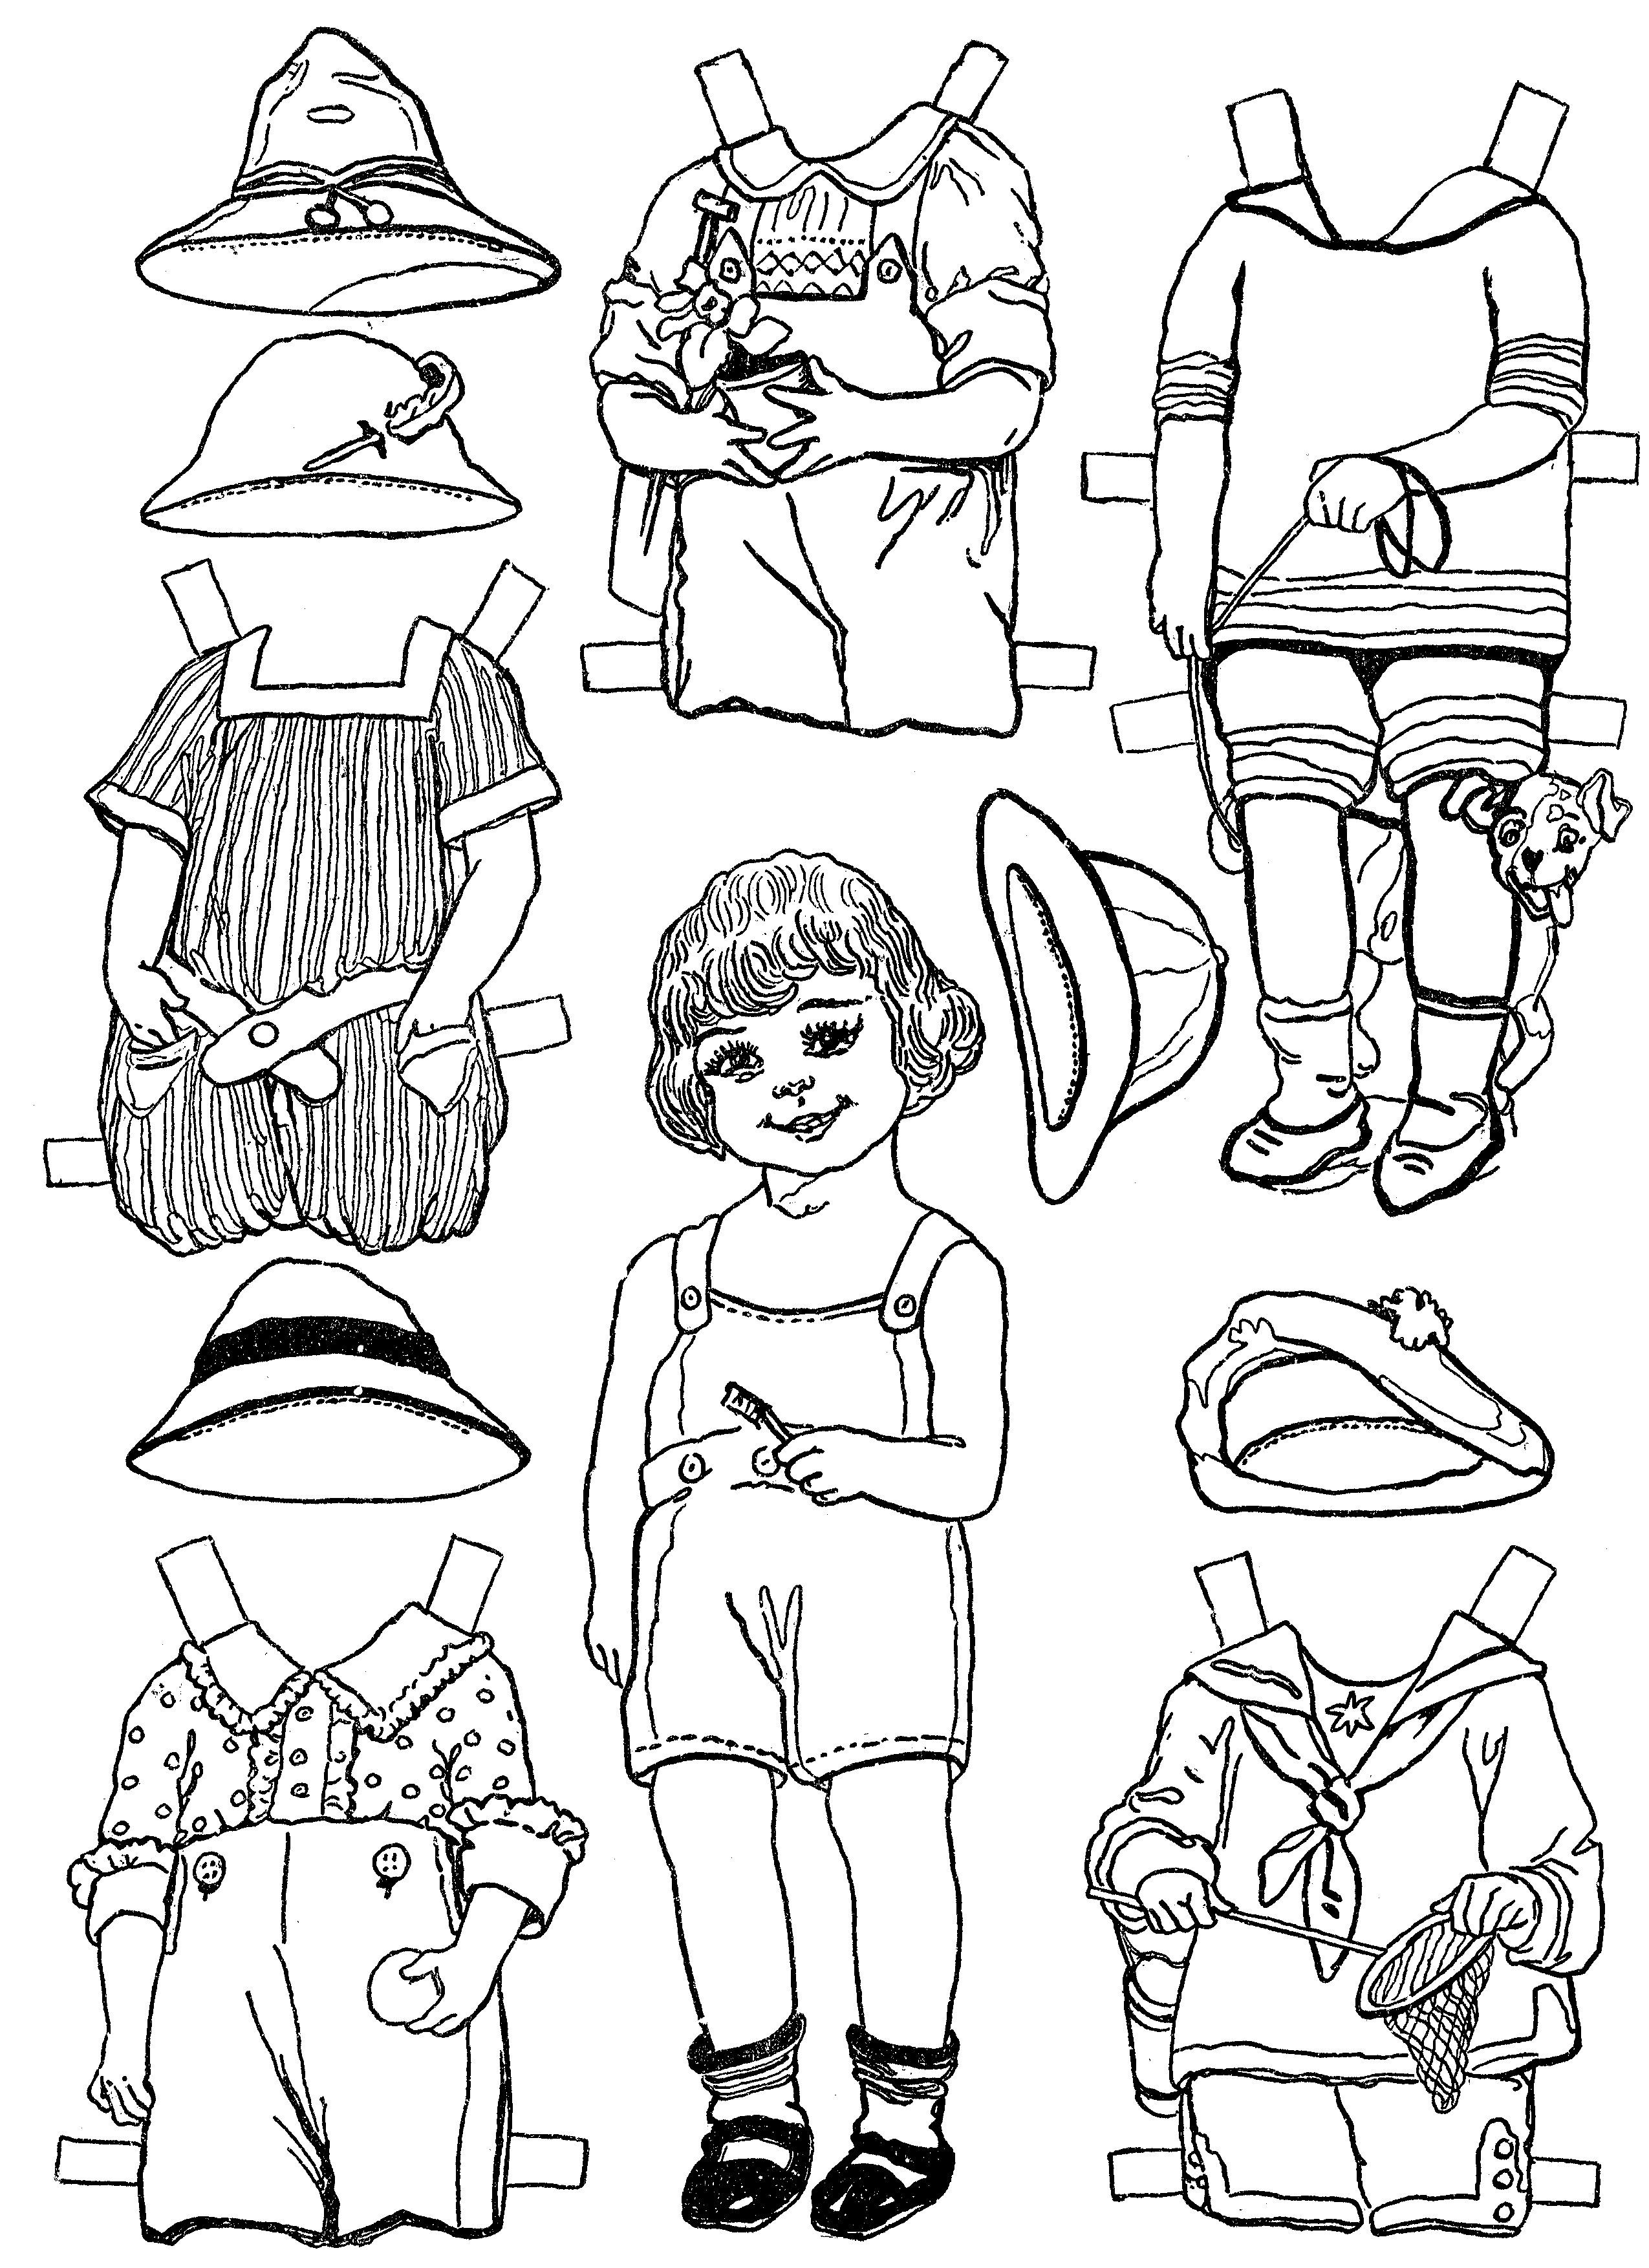 Paper Dolls And Paper Doll Dresses Printable From Kid Fun Paper